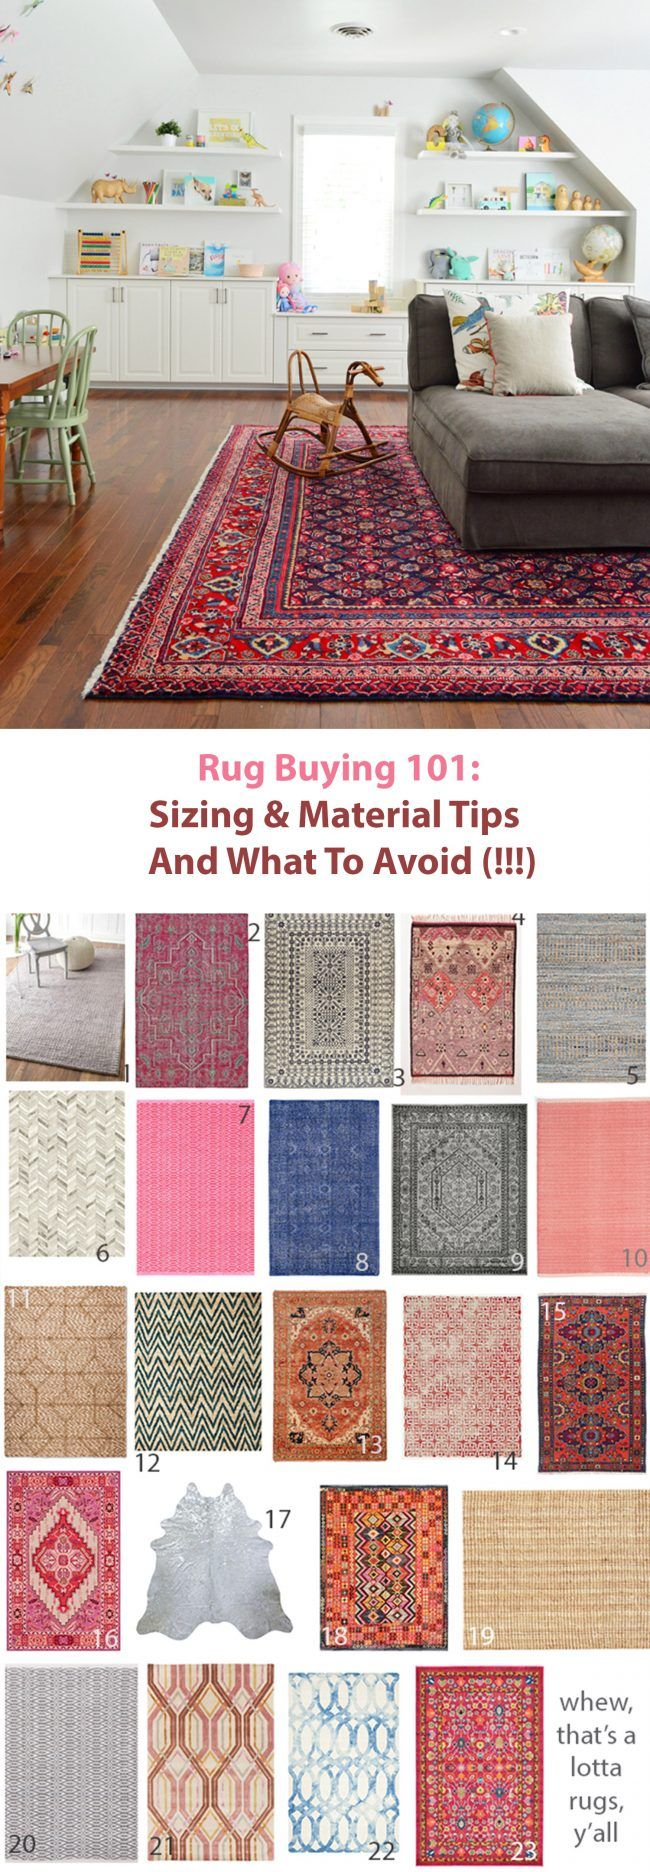 Young House Love   How We Shop For Rugs: What To Look For, How To Save Money, and Mistakes To Avoid   http://www.younghouselove.com